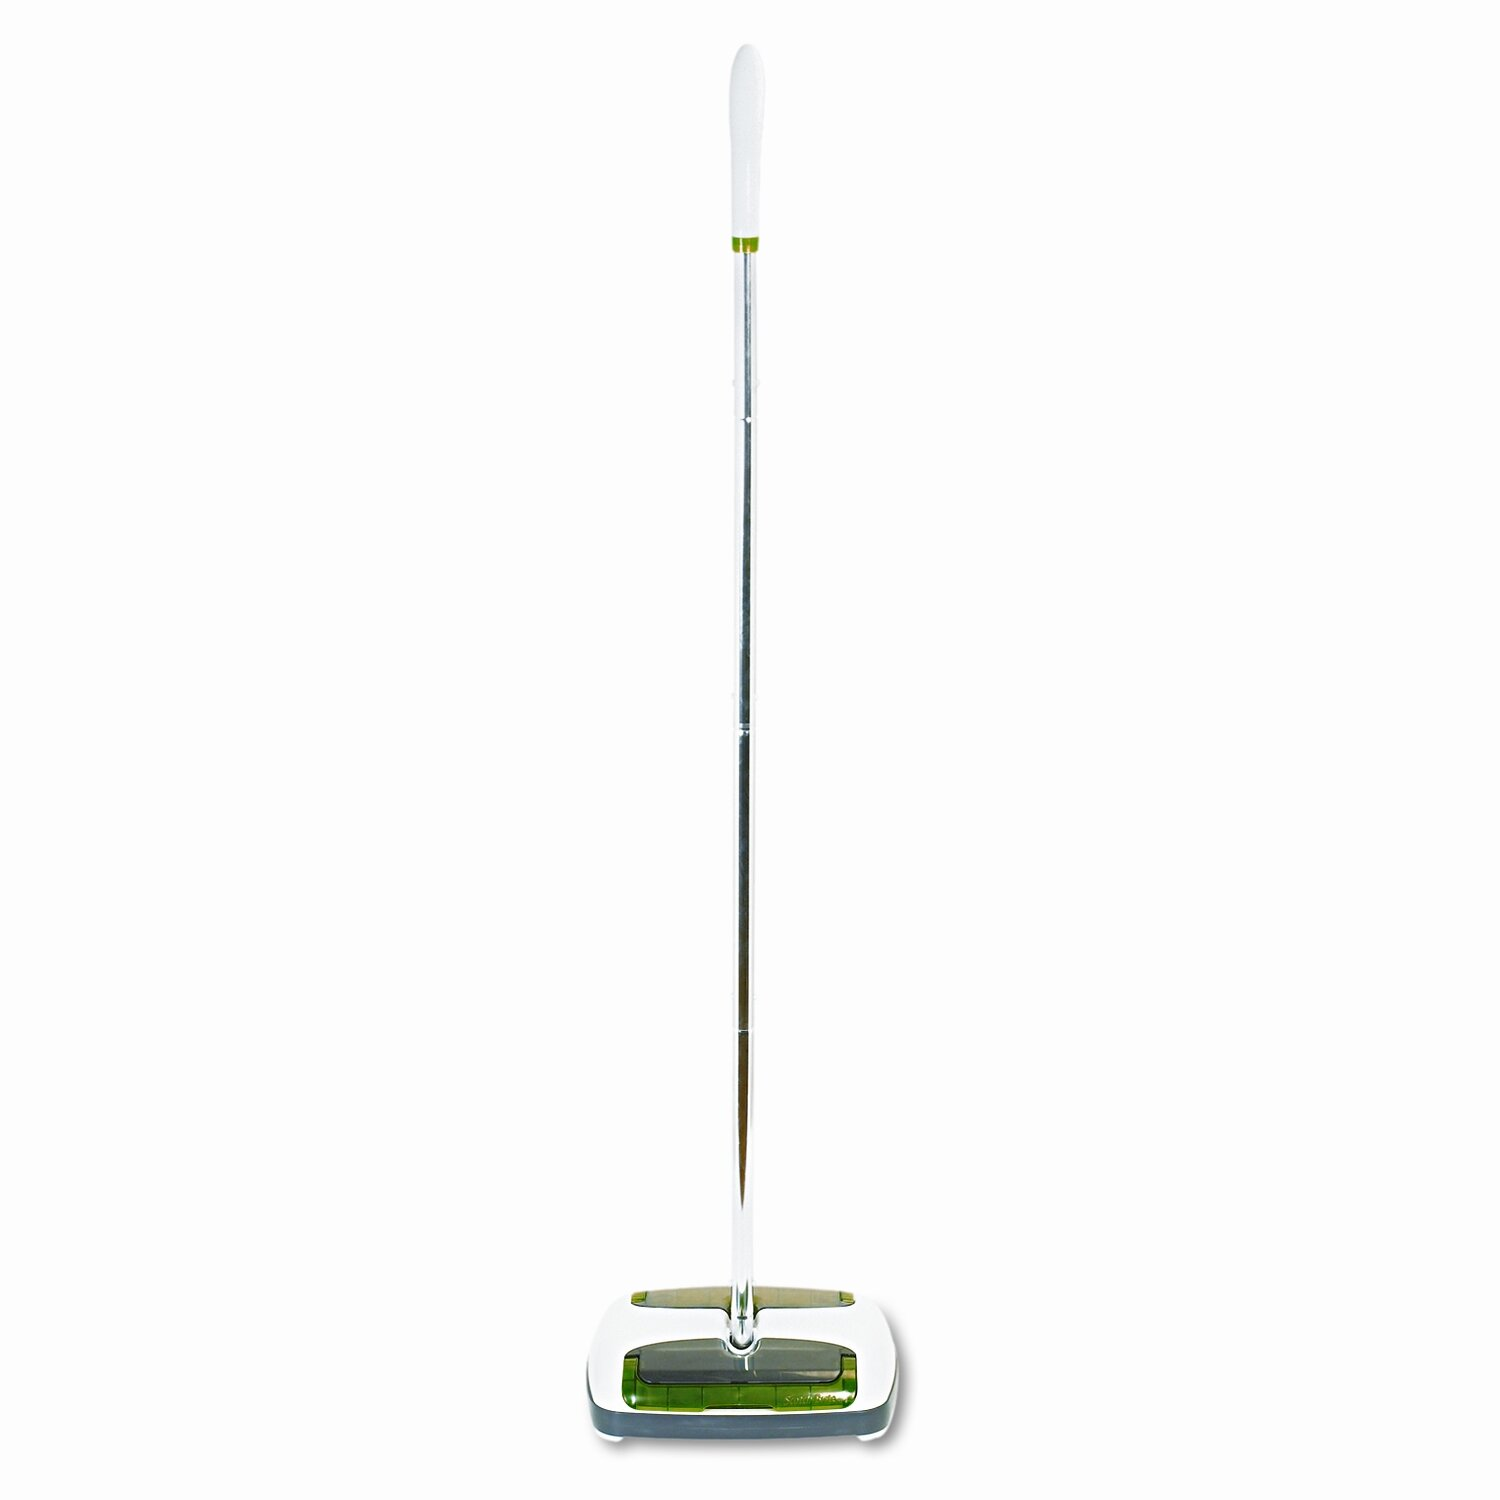 "SCOTCH-BRITE Scotch Brite Quick Floor Sweeper, Rubber Bristles, 42"" Aluminum Handle, White                                                 - MMMM007CCW"